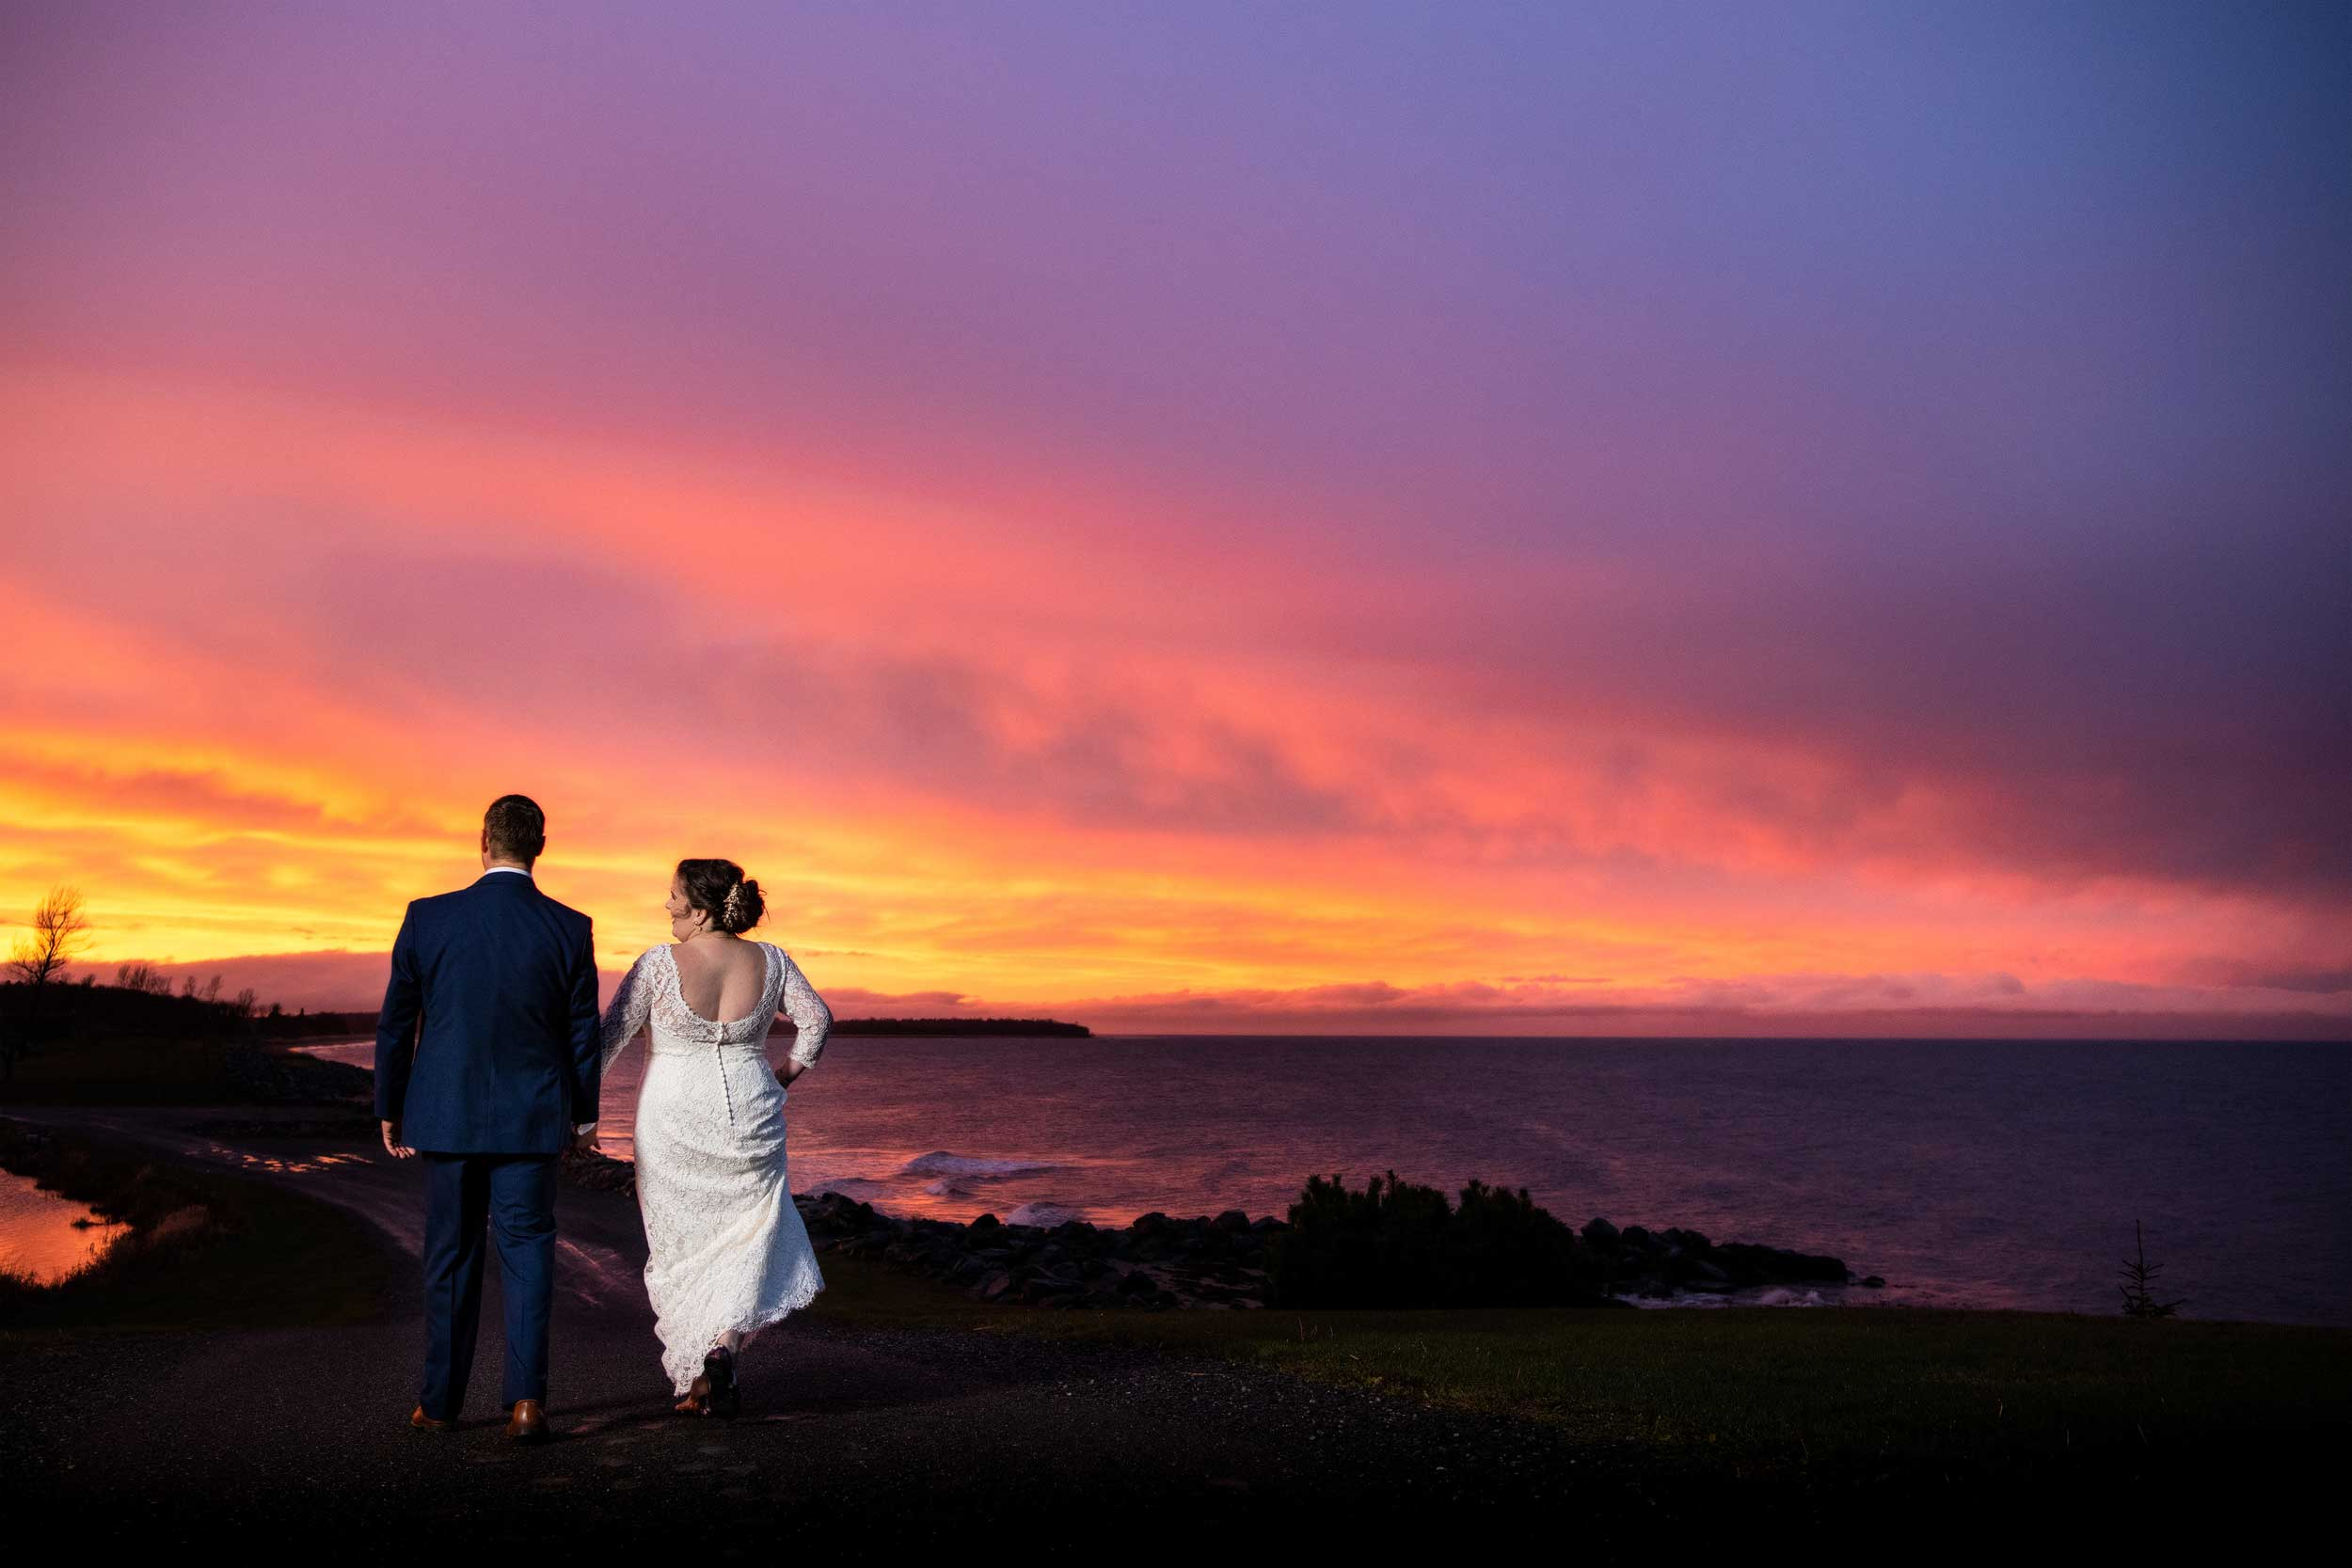 pictou-lodge-wedding-walk-sunset.jpg